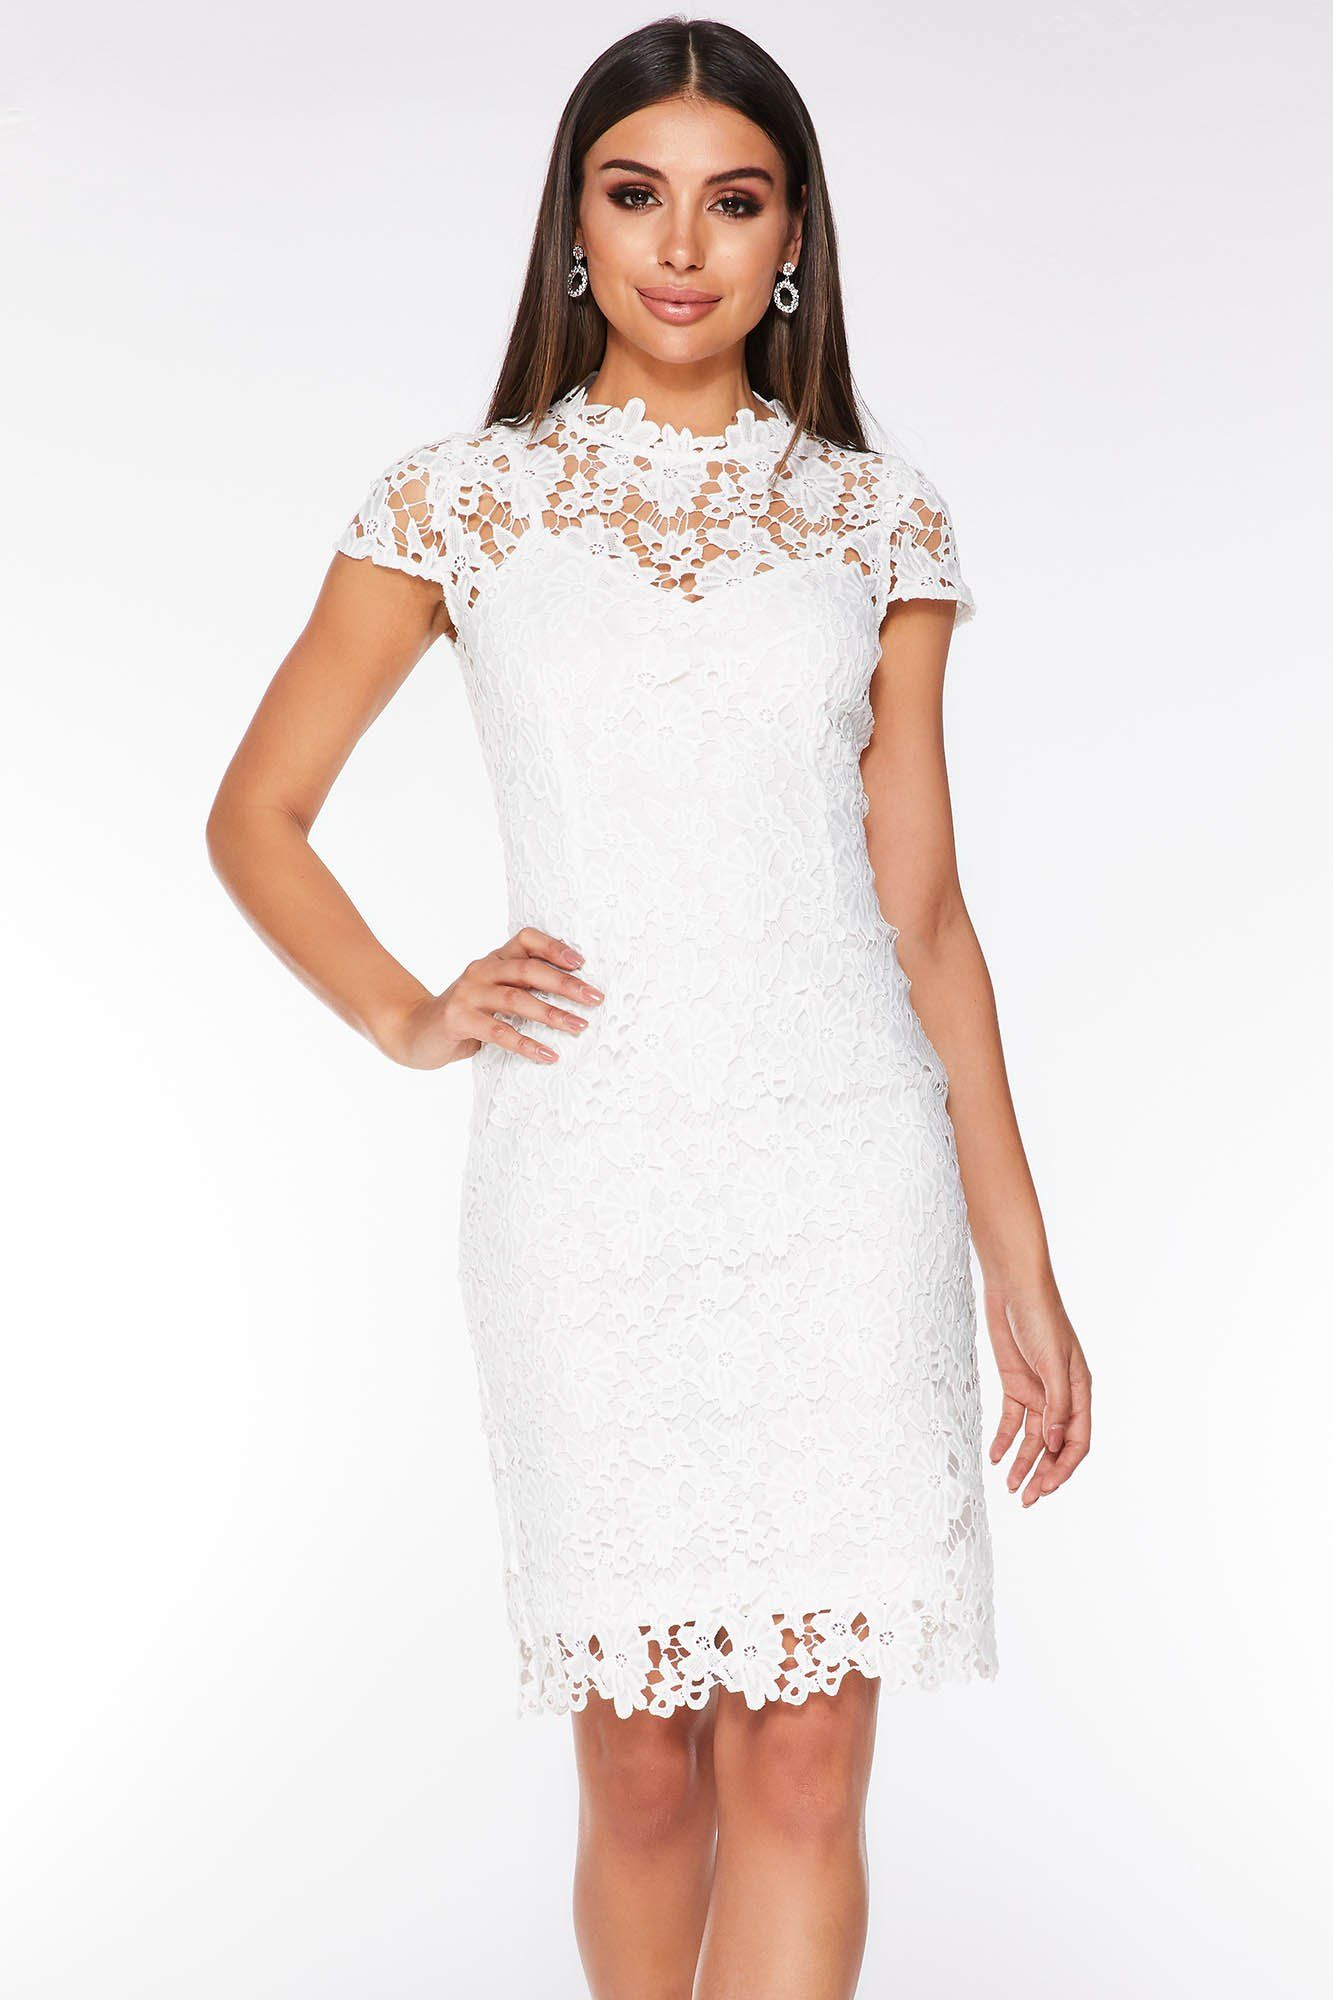 Pin By Spot Pop Fashion On Aintree White Lace Mini Dress Midi Dress With Sleeves Dresses [ 2000 x 1333 Pixel ]